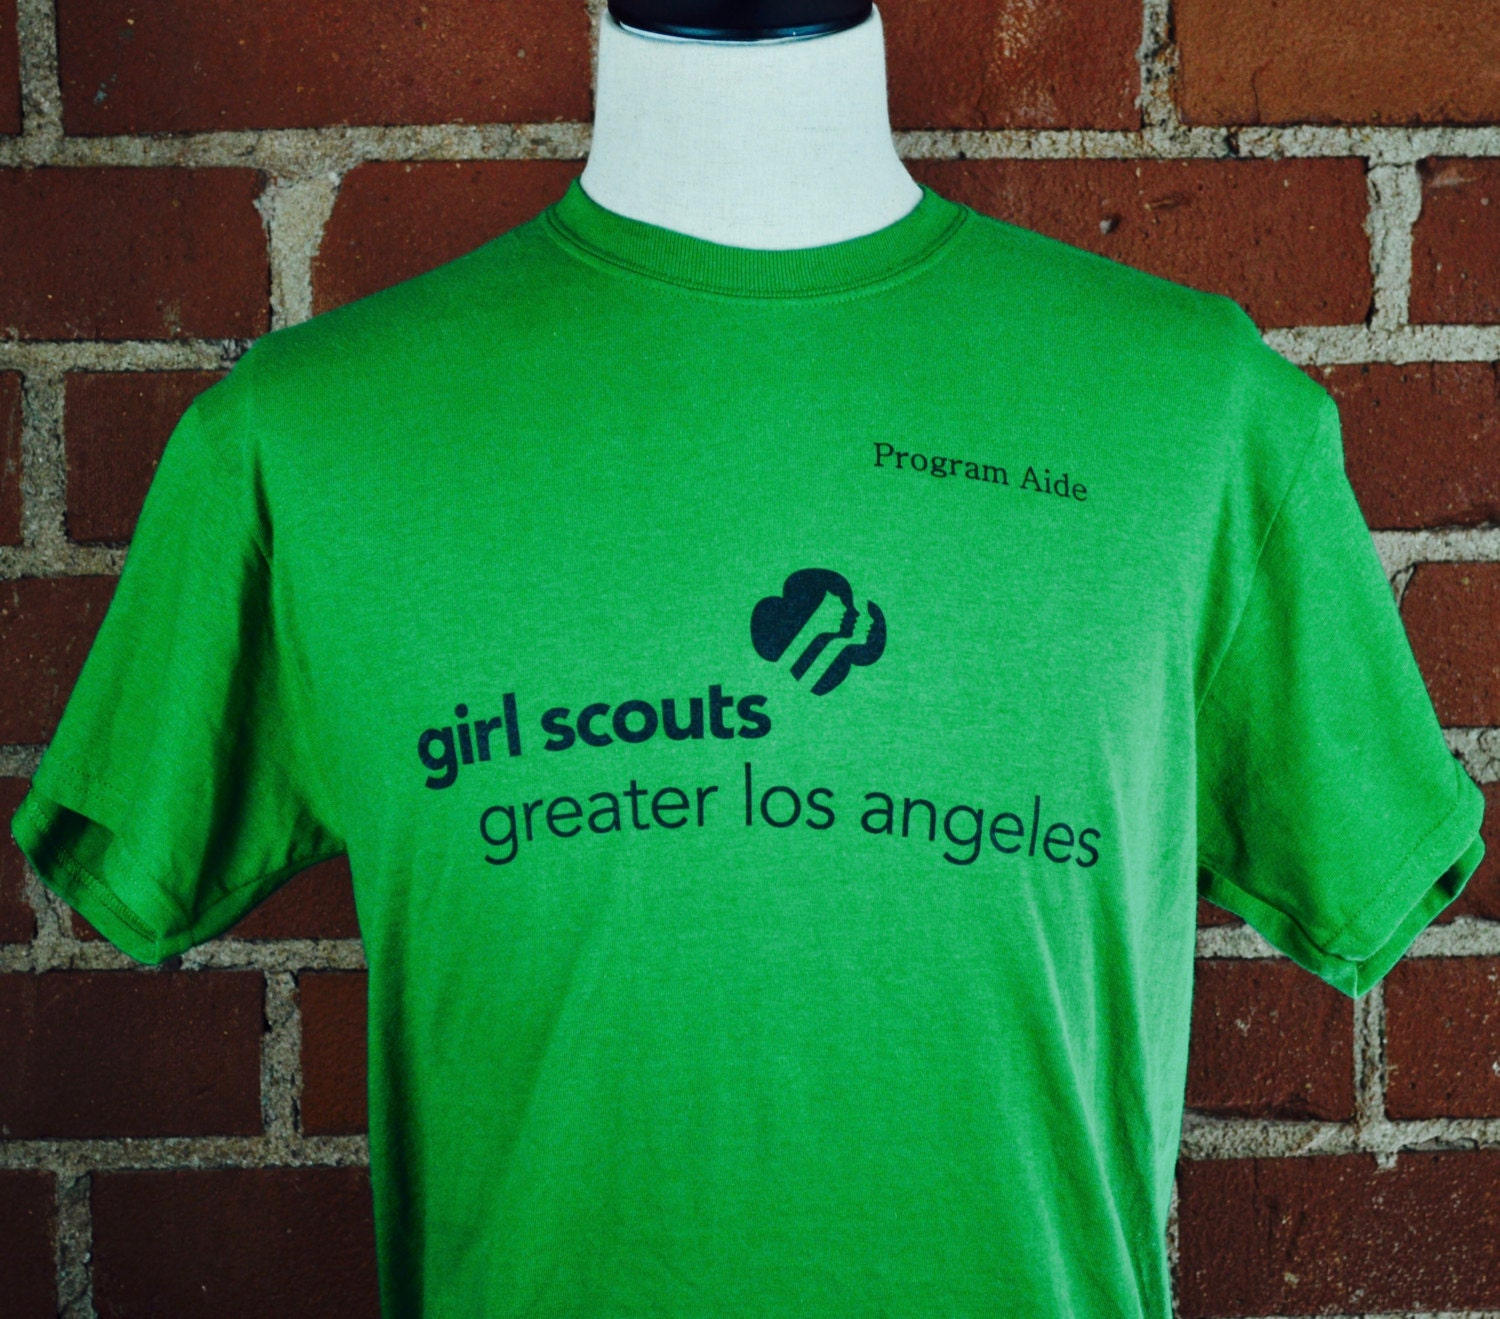 girl scouts of greater los angeles program aide green t